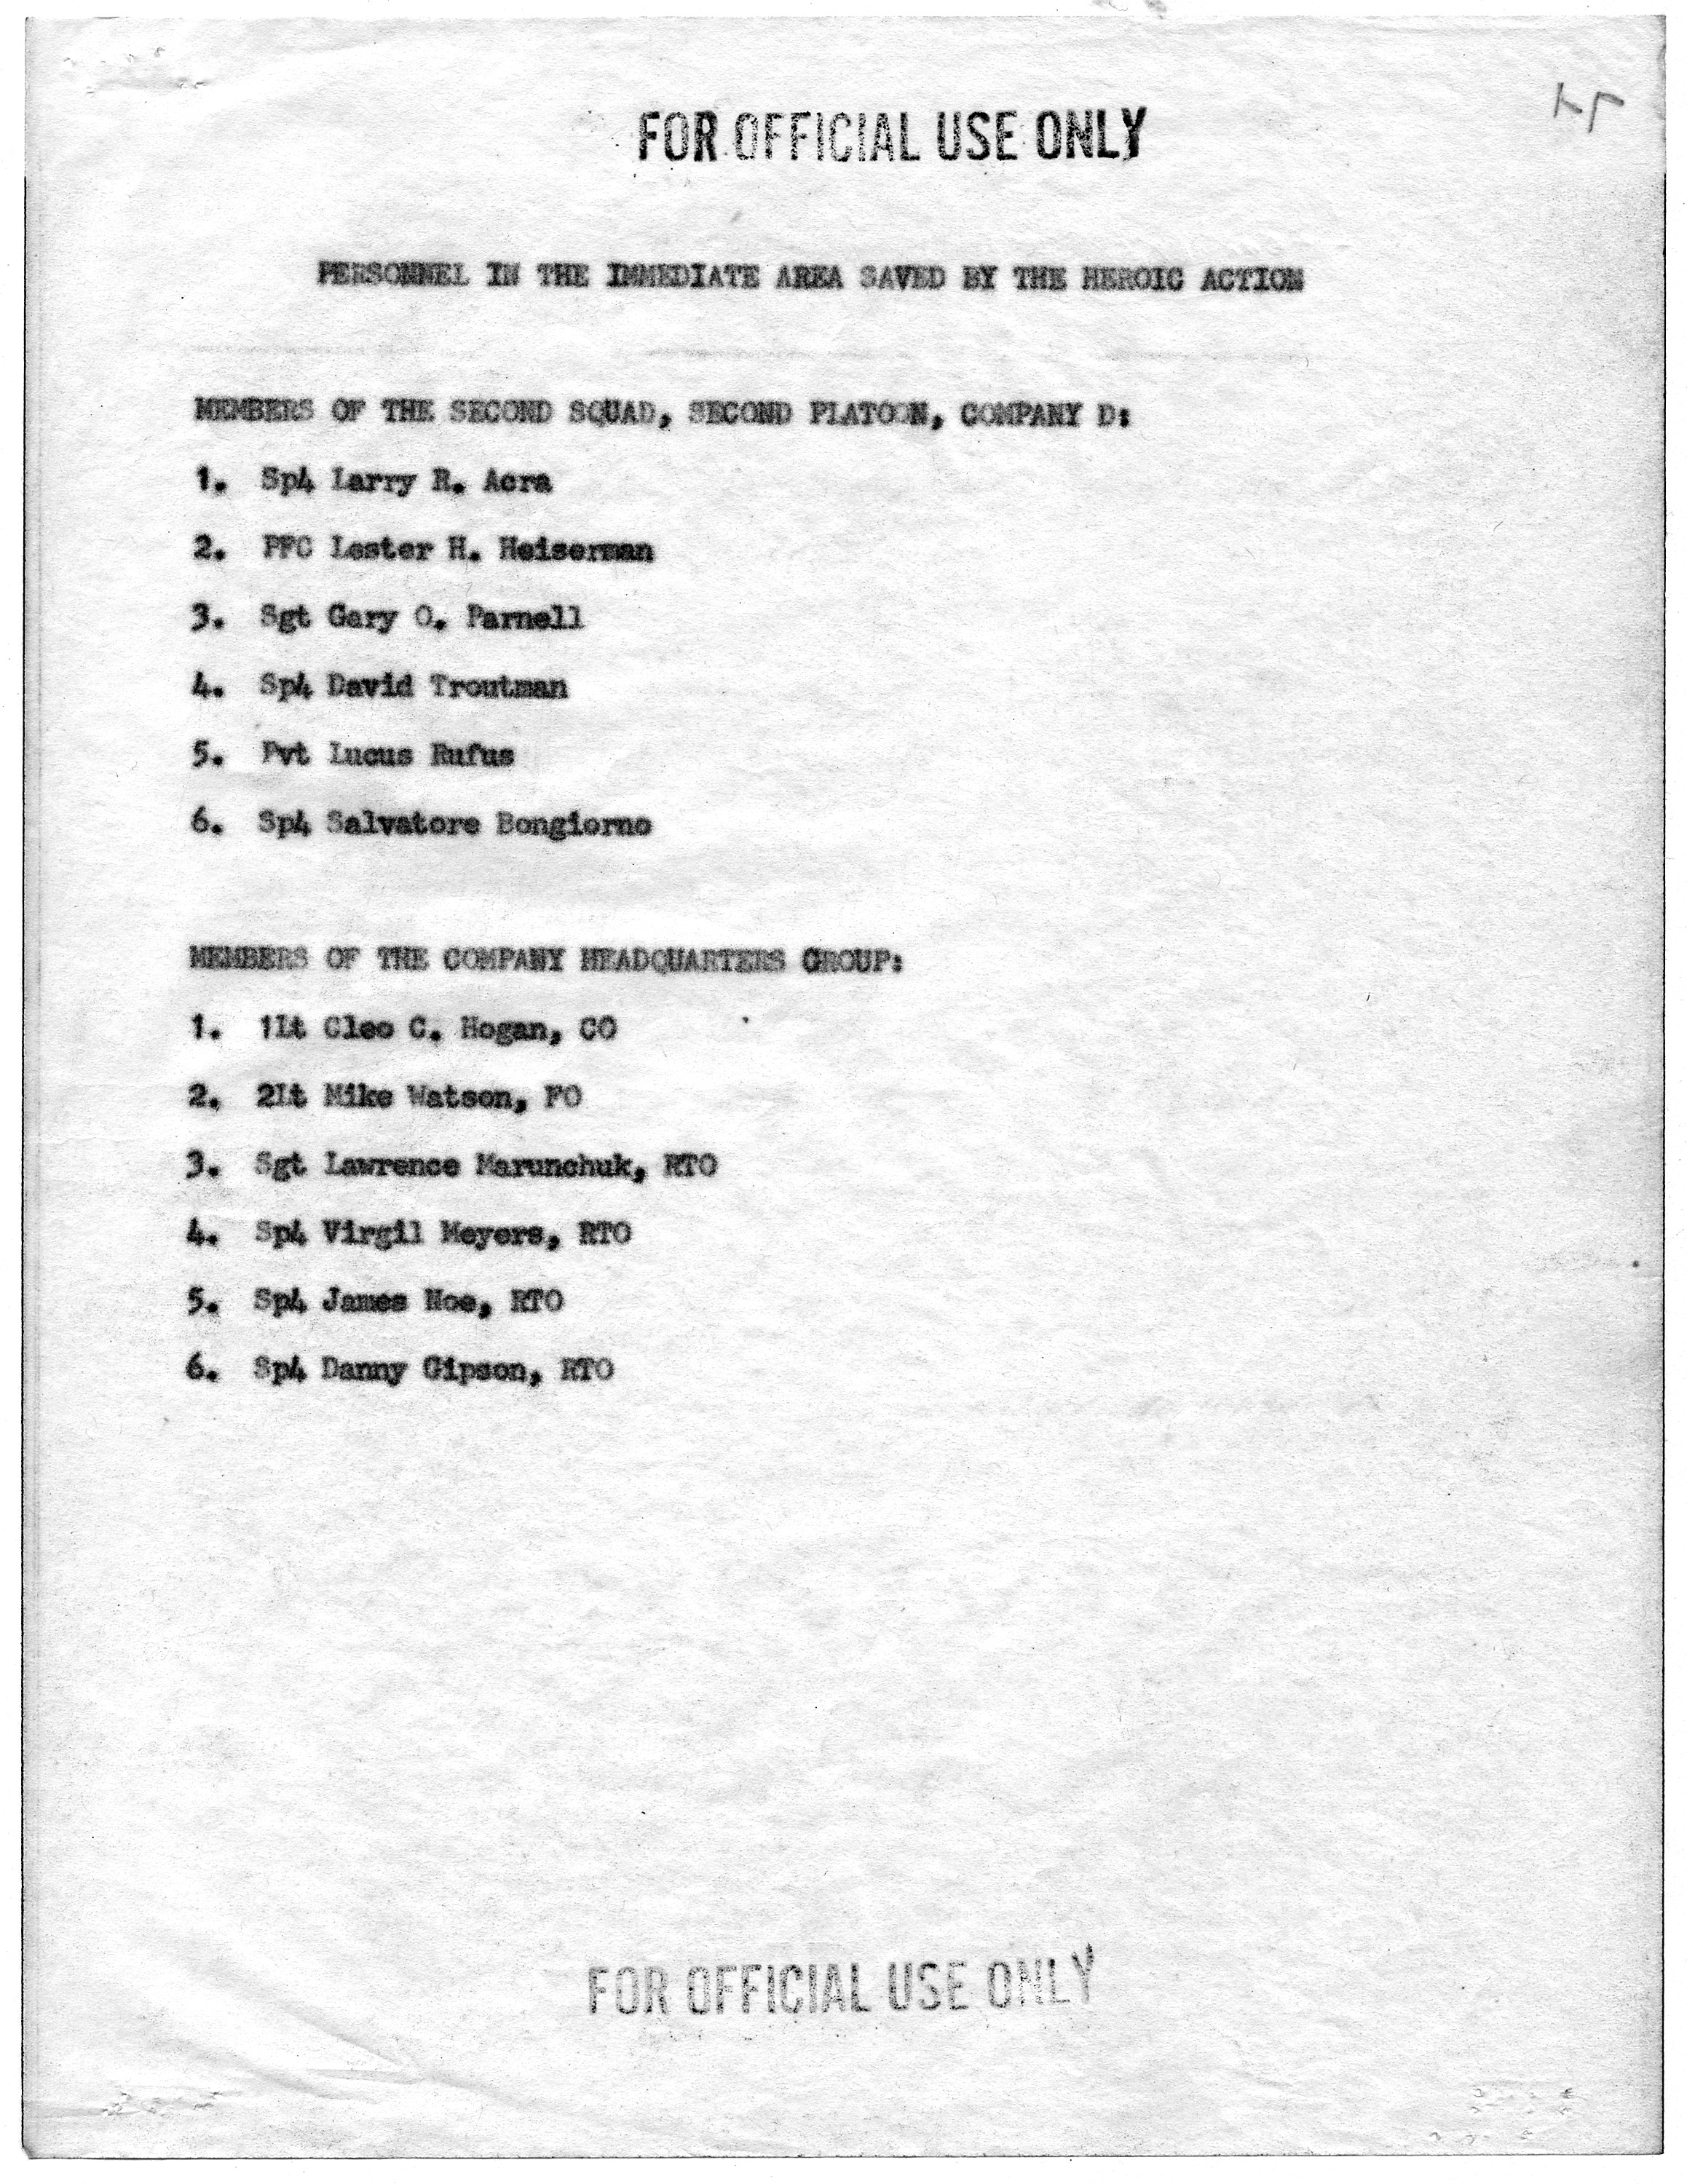 file list of personnel in the immediate area saved by the heroic file list of personnel in the immediate area saved by the heroic action of clifford